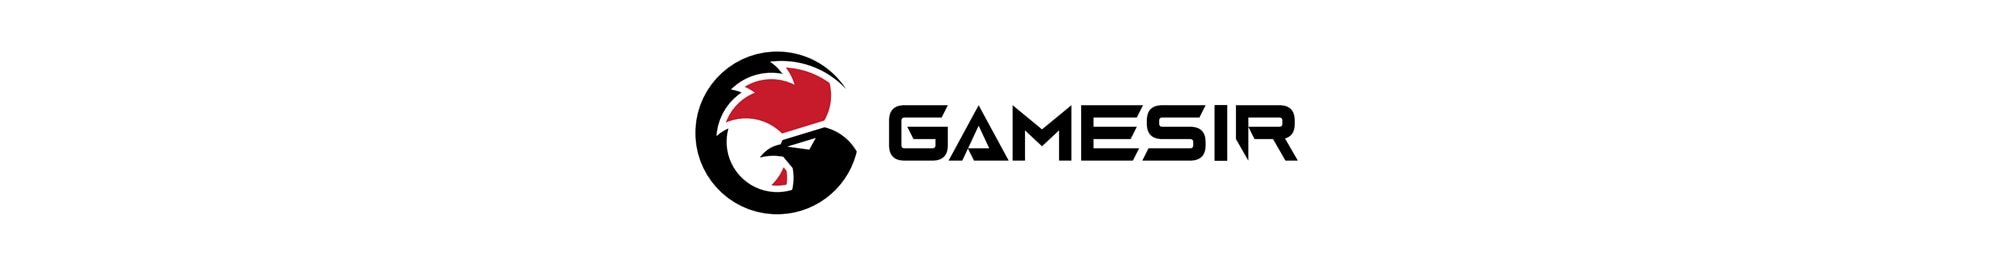 GameSir VX AimSwitch Keyboard and Mouse Adapter for Xbox One / PS4 / PS3 / Nintendo Switch for PUBG Call of Duty